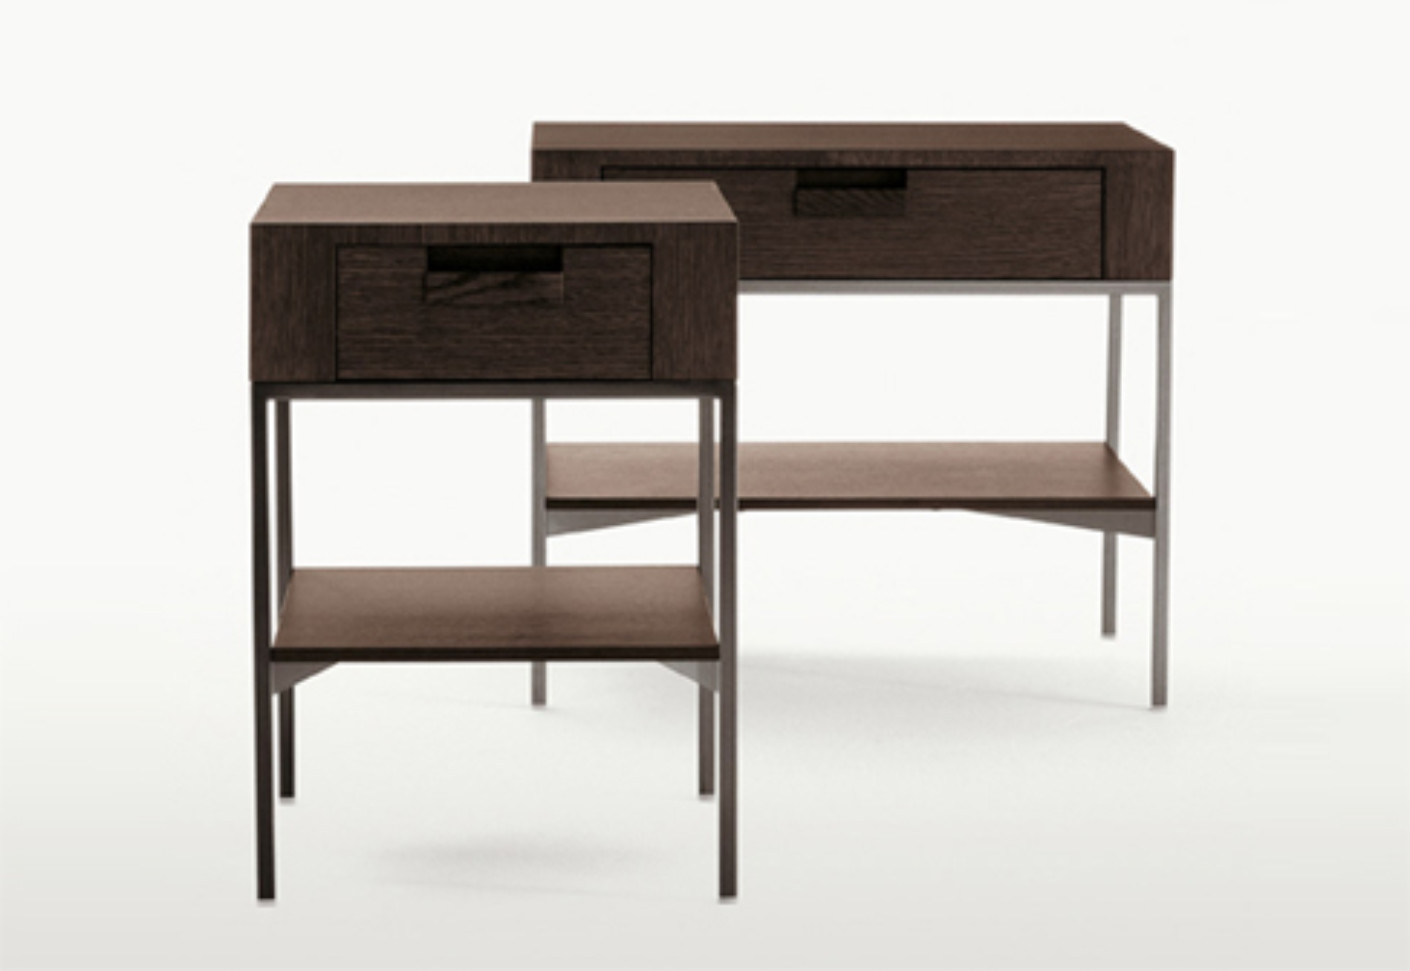 ebe konsole mit schublade von maxalto stylepark. Black Bedroom Furniture Sets. Home Design Ideas